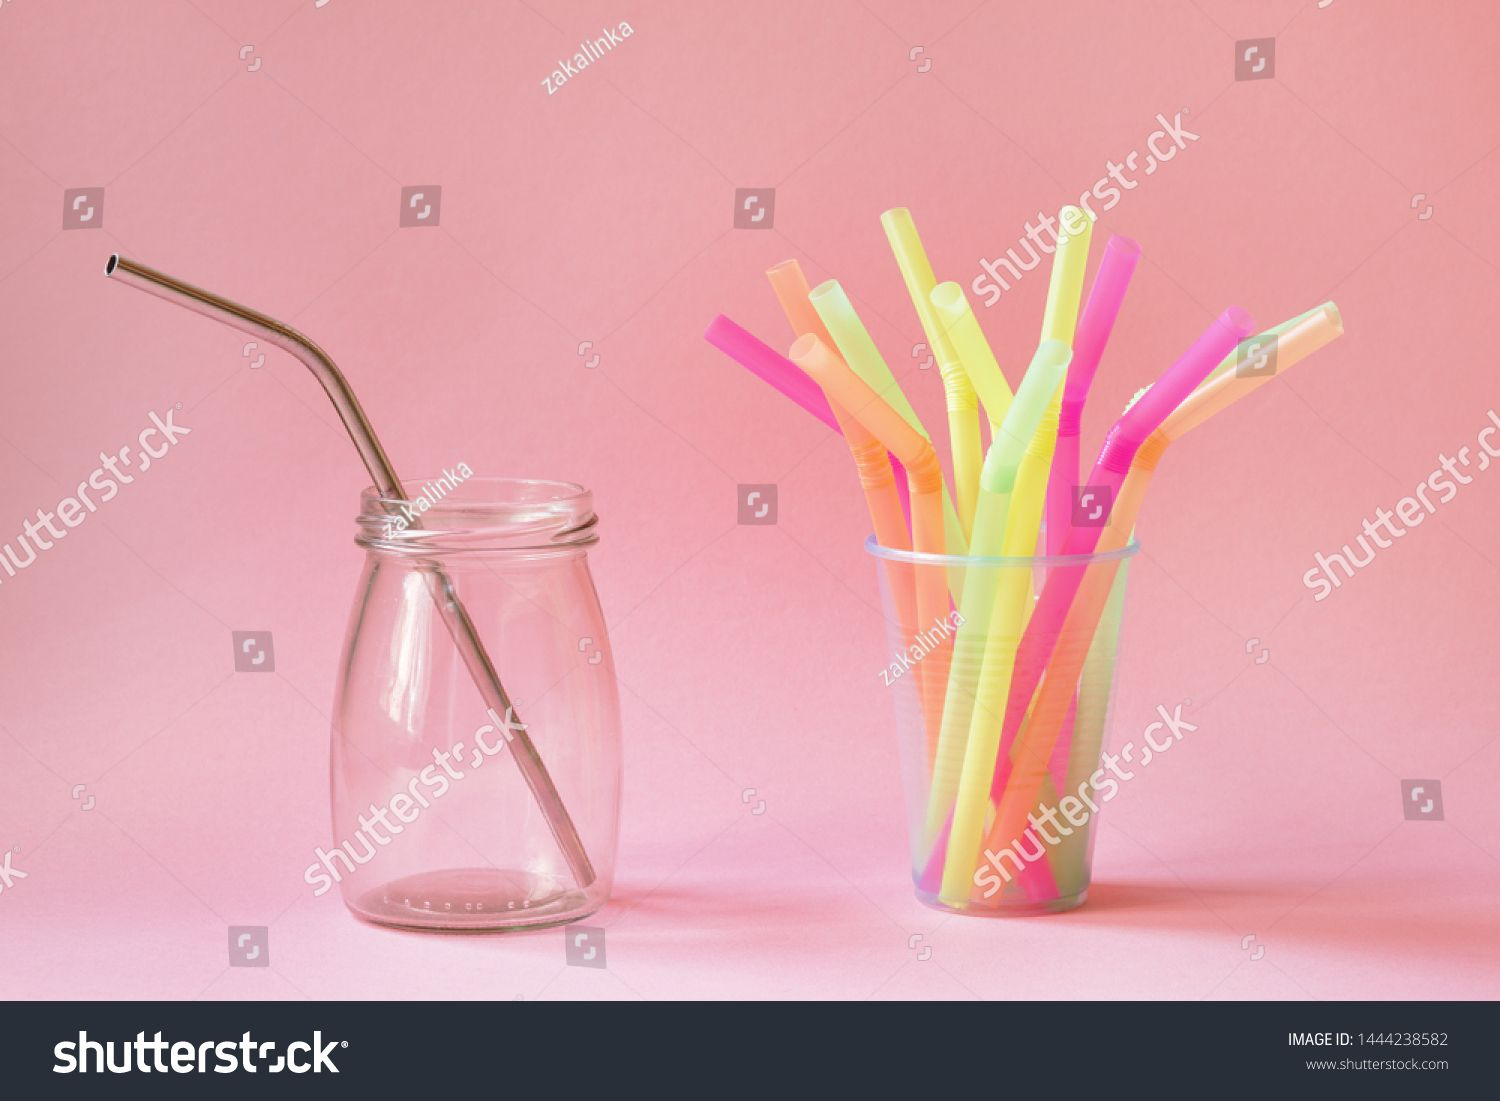 zero waste and ecofriendly green lifestyle concept concept choice between reusable metal straw and plastic straws